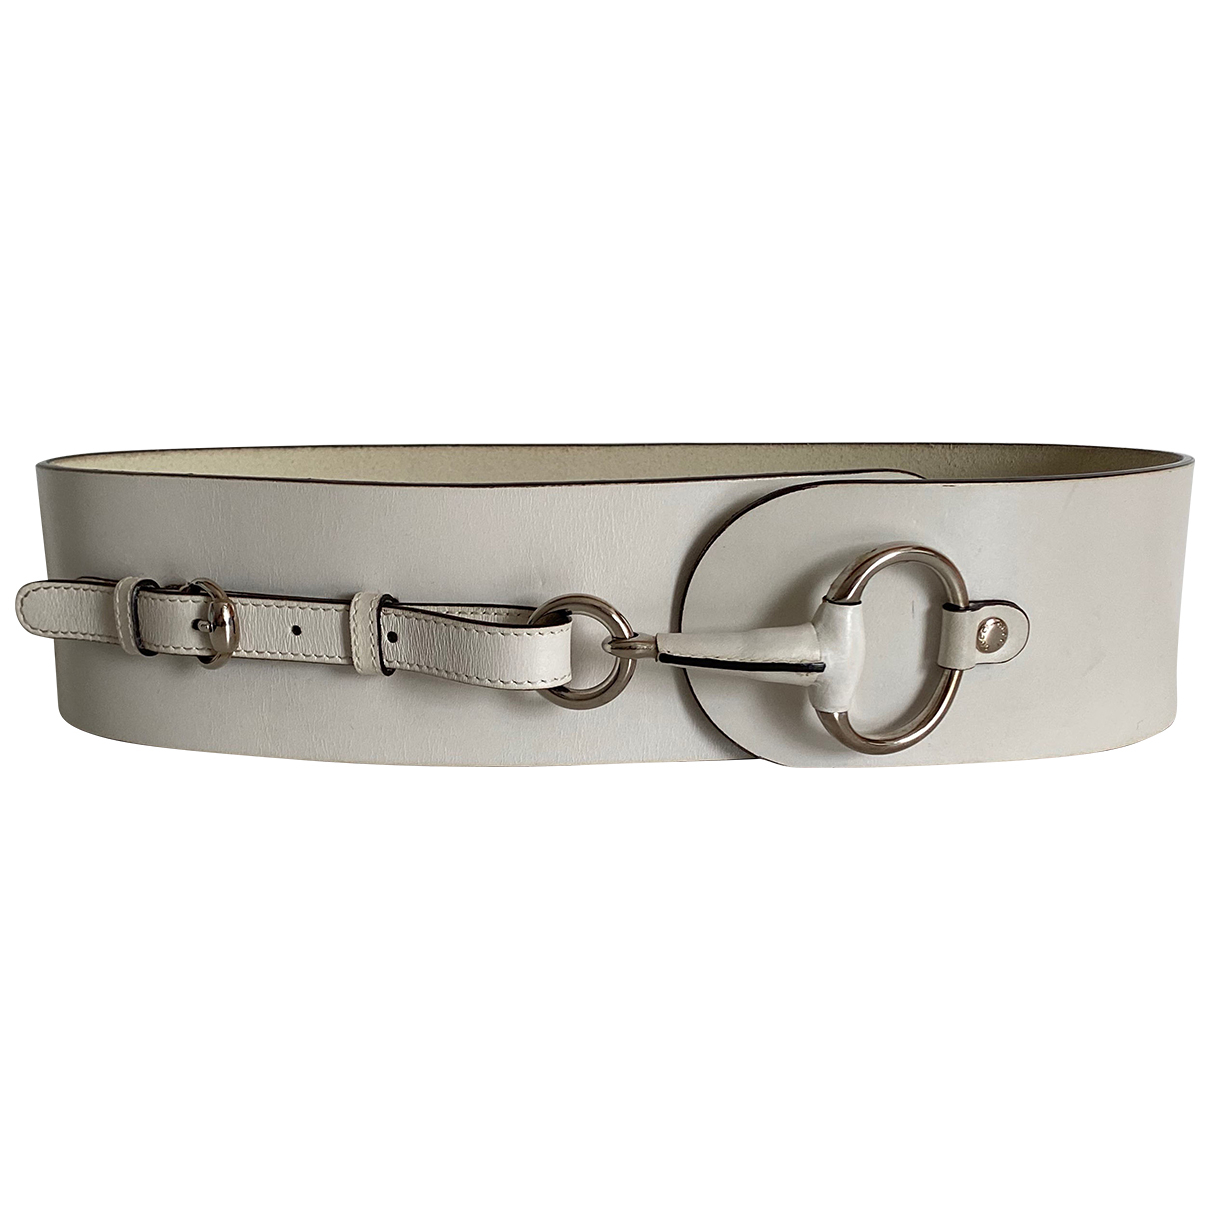 Gucci N White Leather belt for Women 80 cm